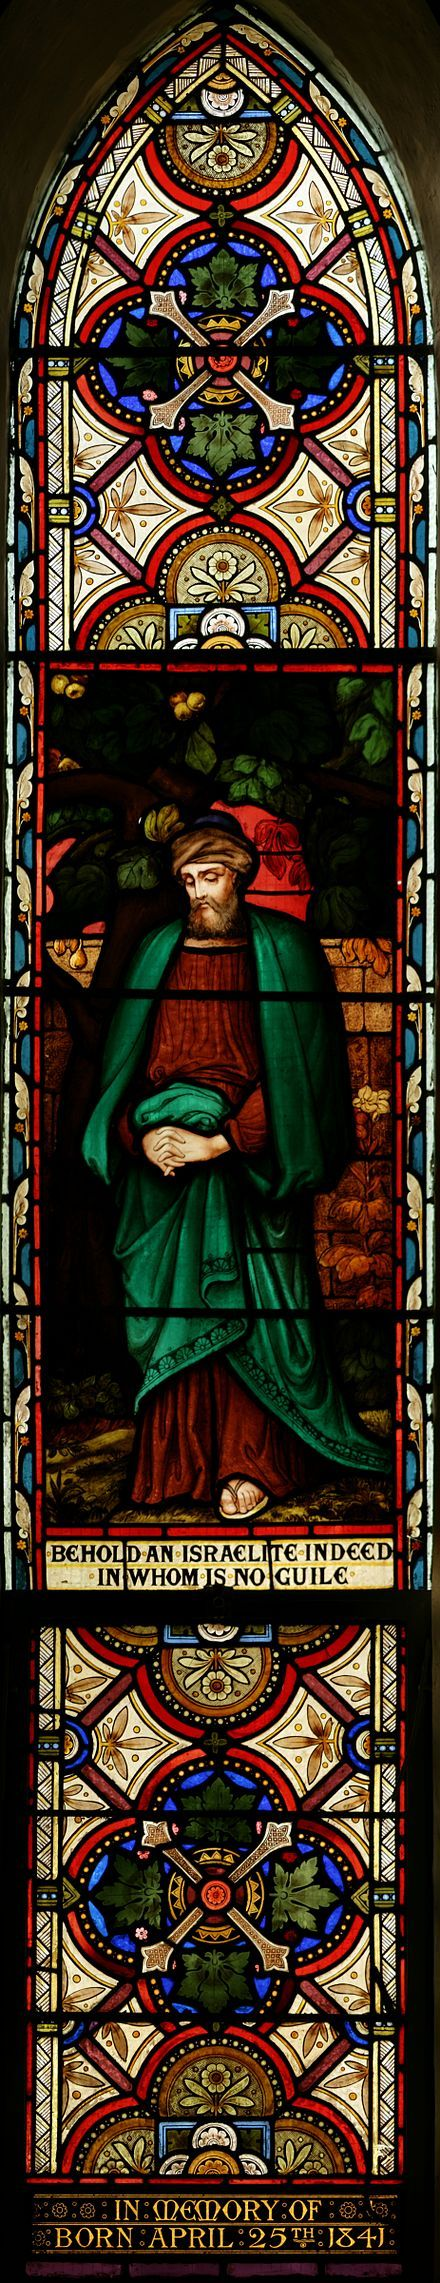 Lyon and Cottier, Stained glass panel in the transept of St. John's Anglican Church, Ashfield, New South Wales (NSW)